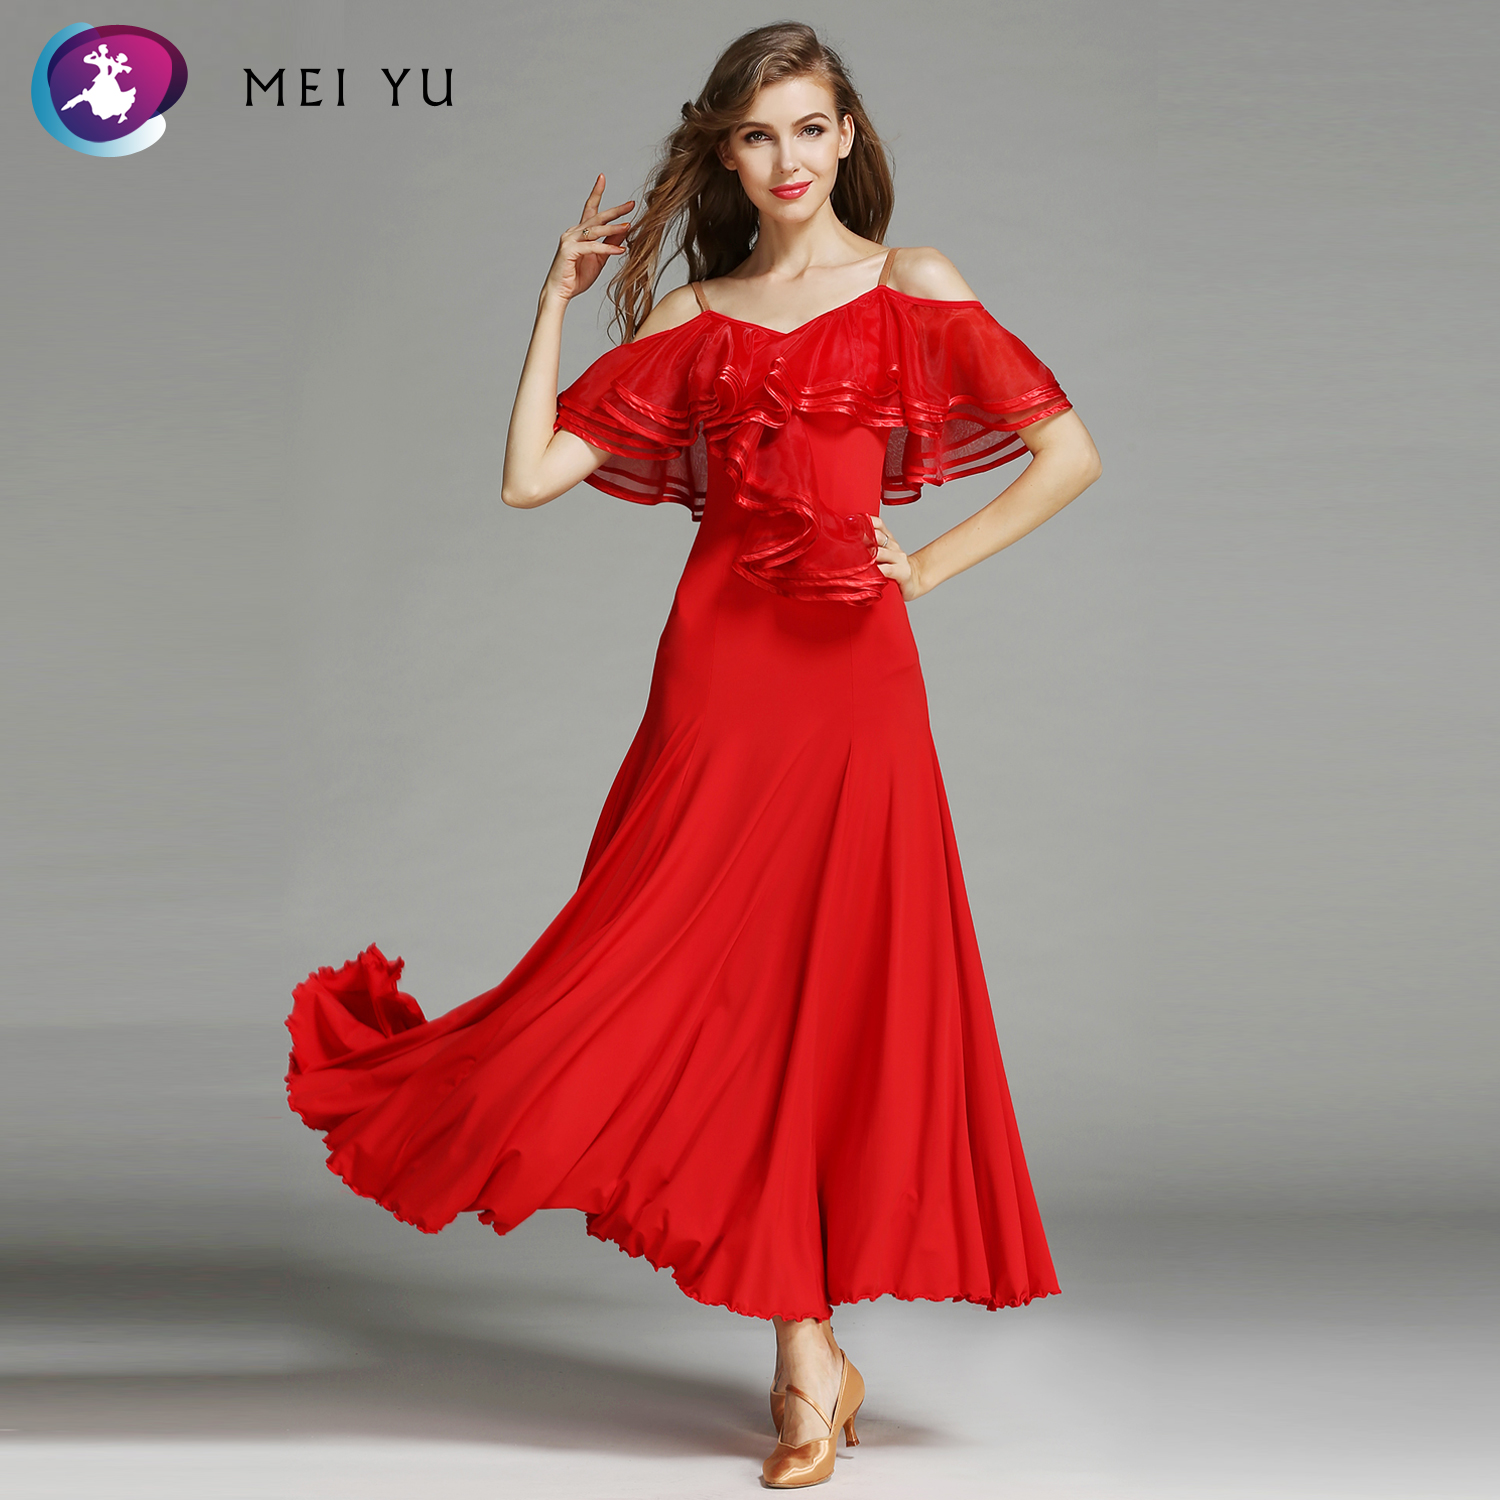 Ballroom Mei Yu Hb675 Modern Dance Costume Women Lady Adult Waltzing Tango See-through Dancing Dress Ballroom Costume Evening Party Dress Novelty & Special Use